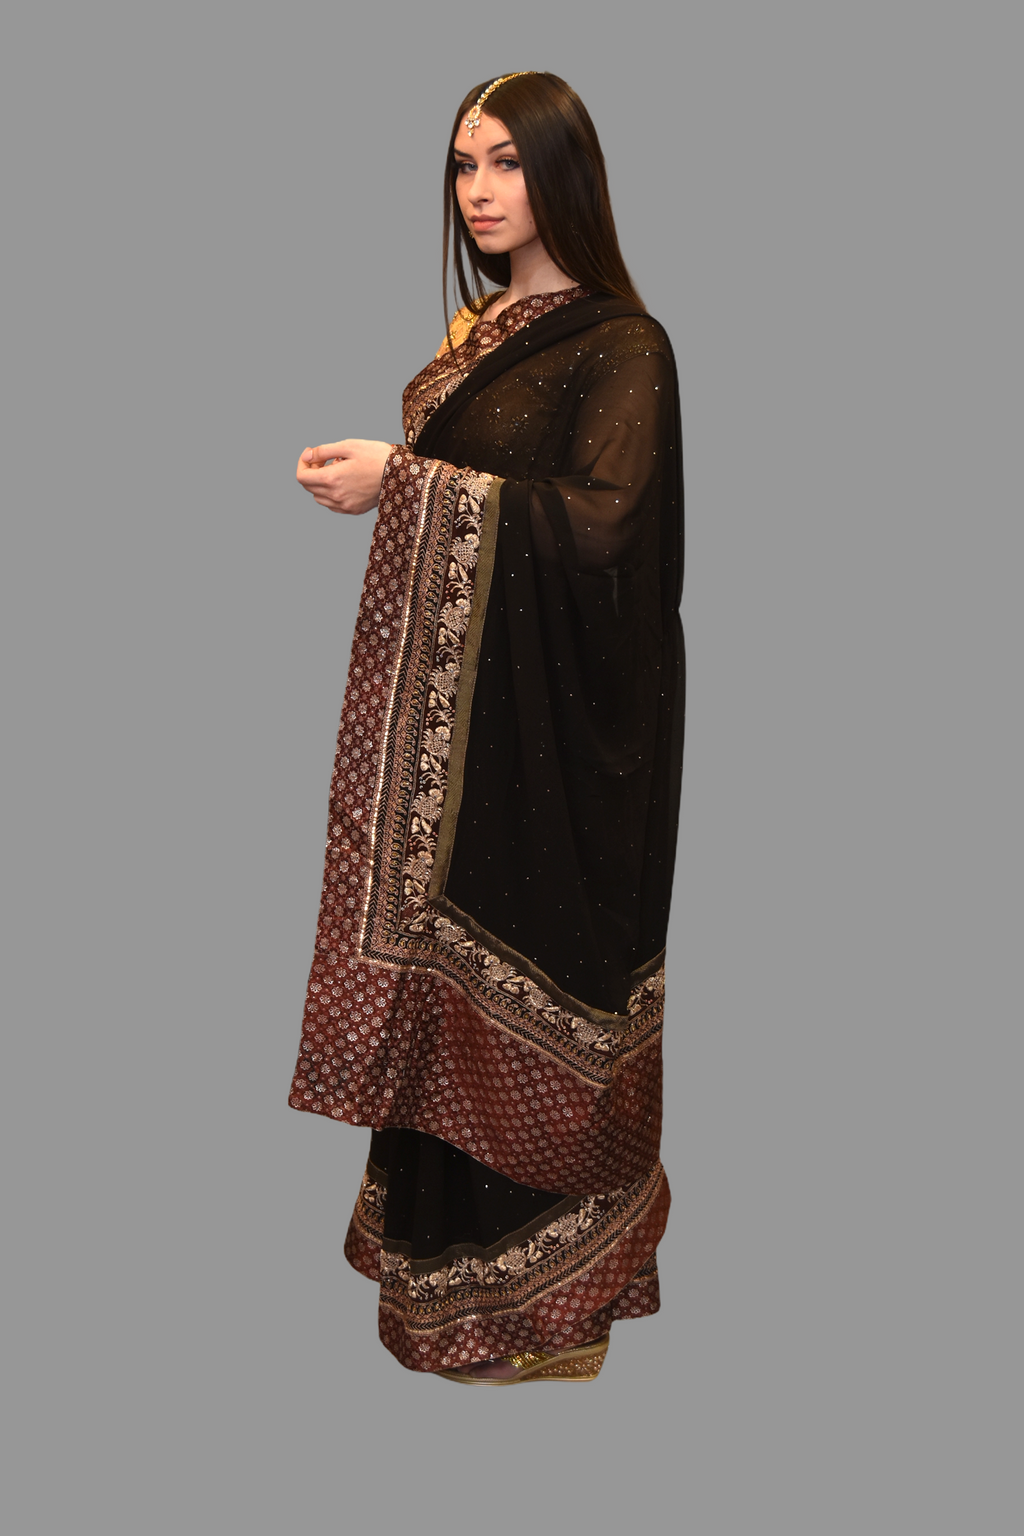 Silk Georgette Embroidered Dark Chocolate Brown Saree With Contrast Maroon Border